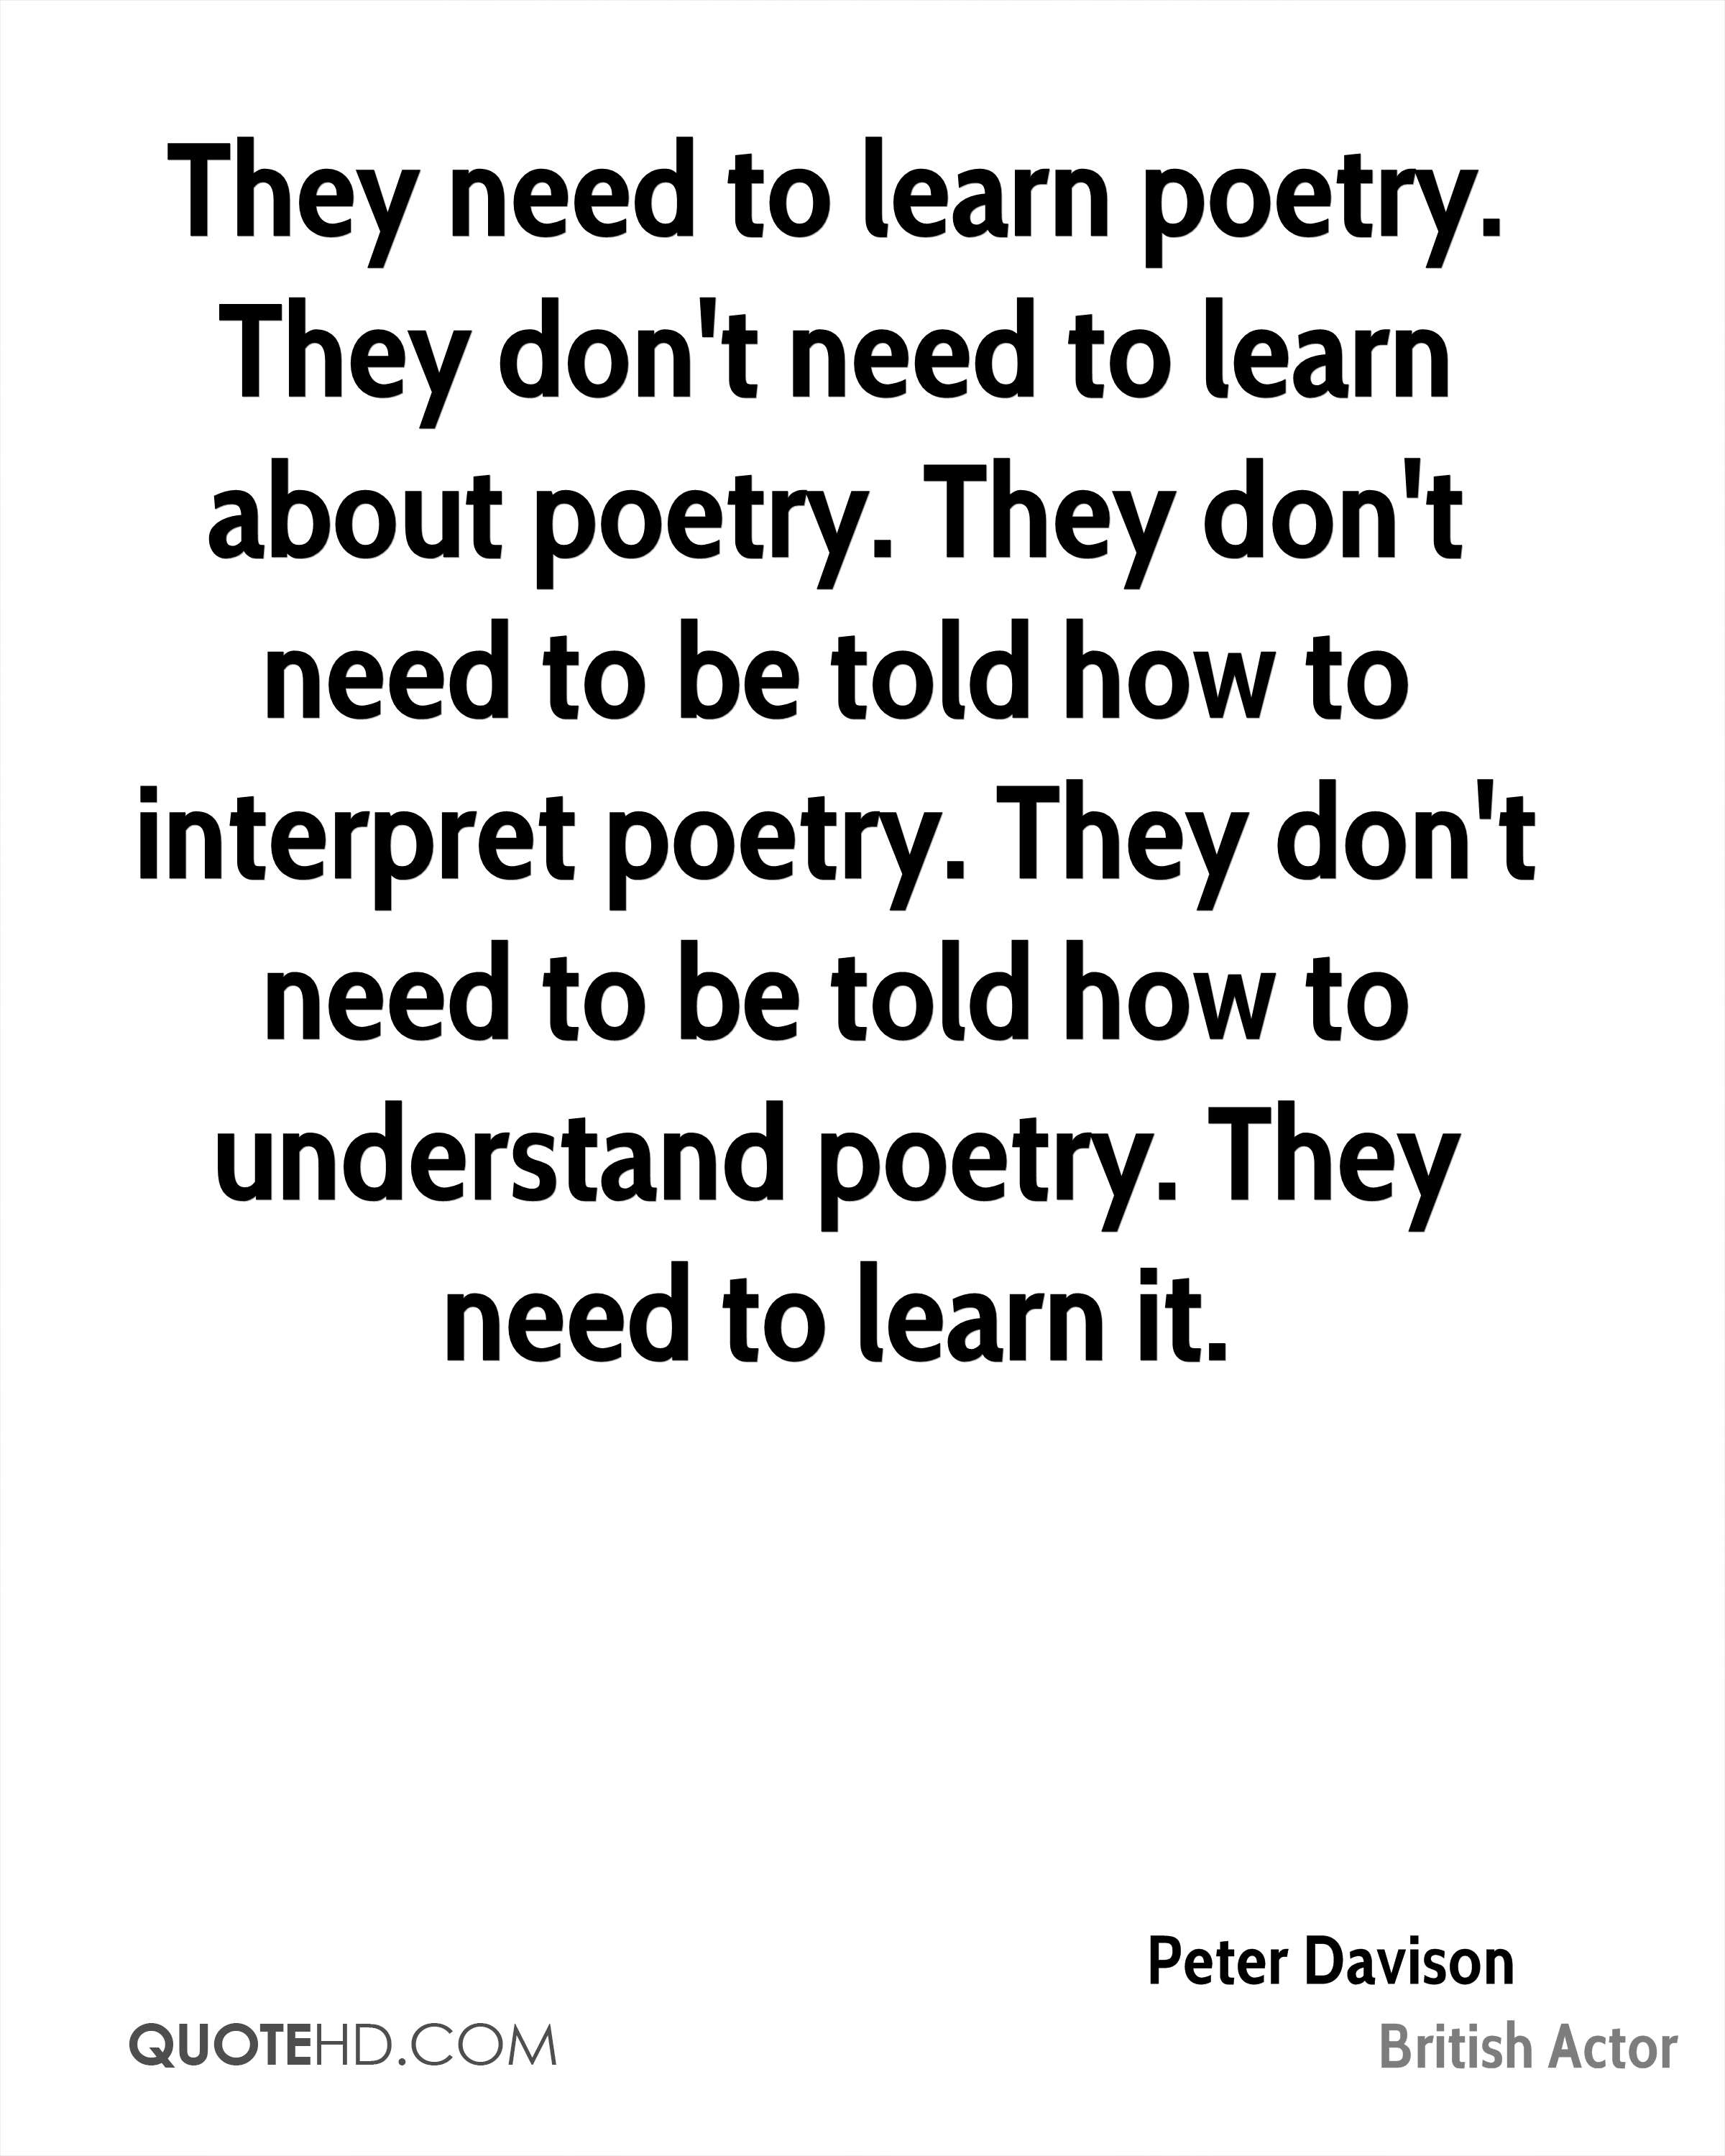 They need to learn poetry. They don't need to learn about poetry. They don't need to be told how to interpret poetry. They don't need to be told how to understand poetry. They need to learn it.